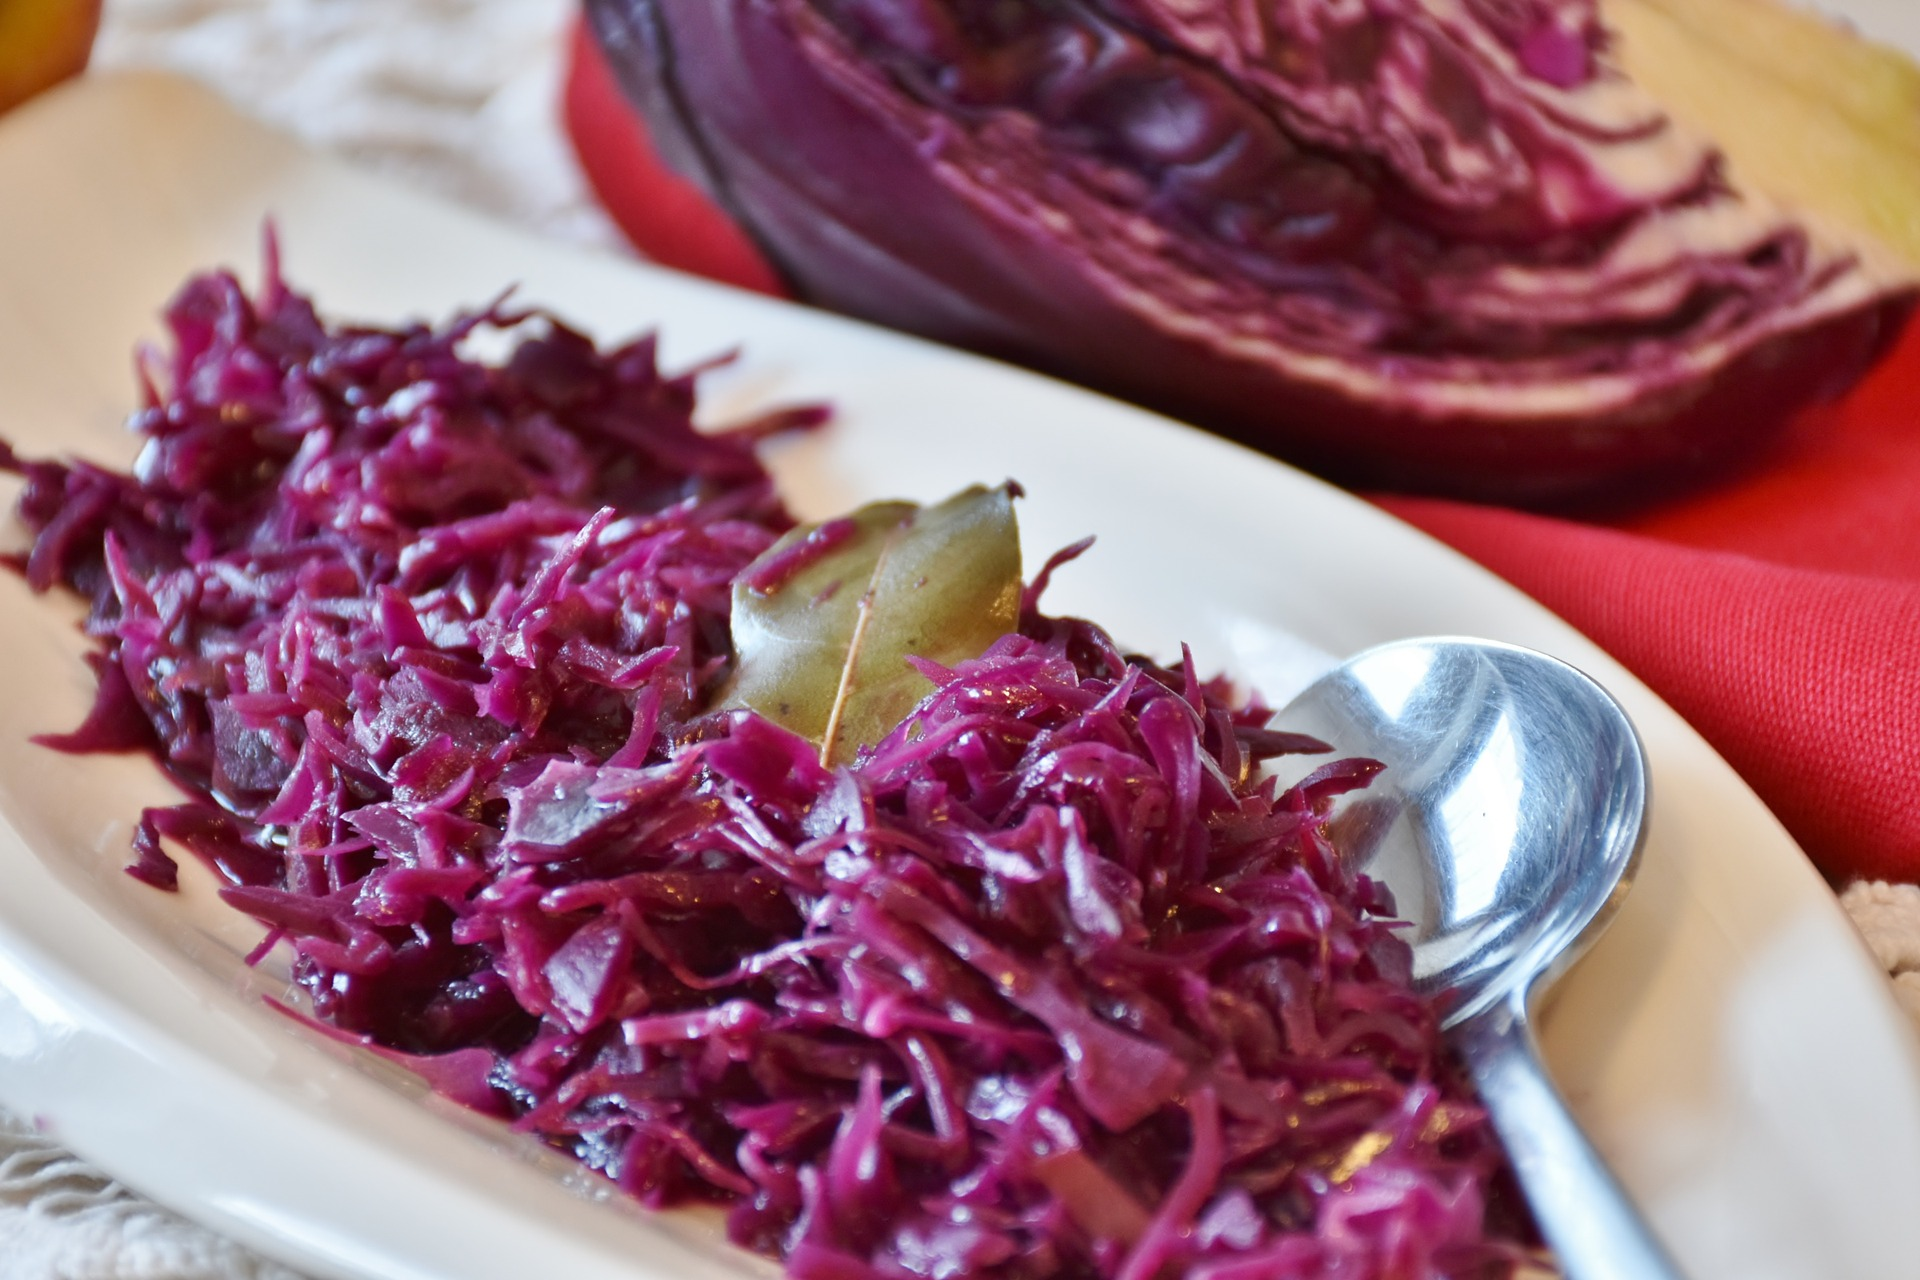 red-cabbage-1224132_1920.jpg